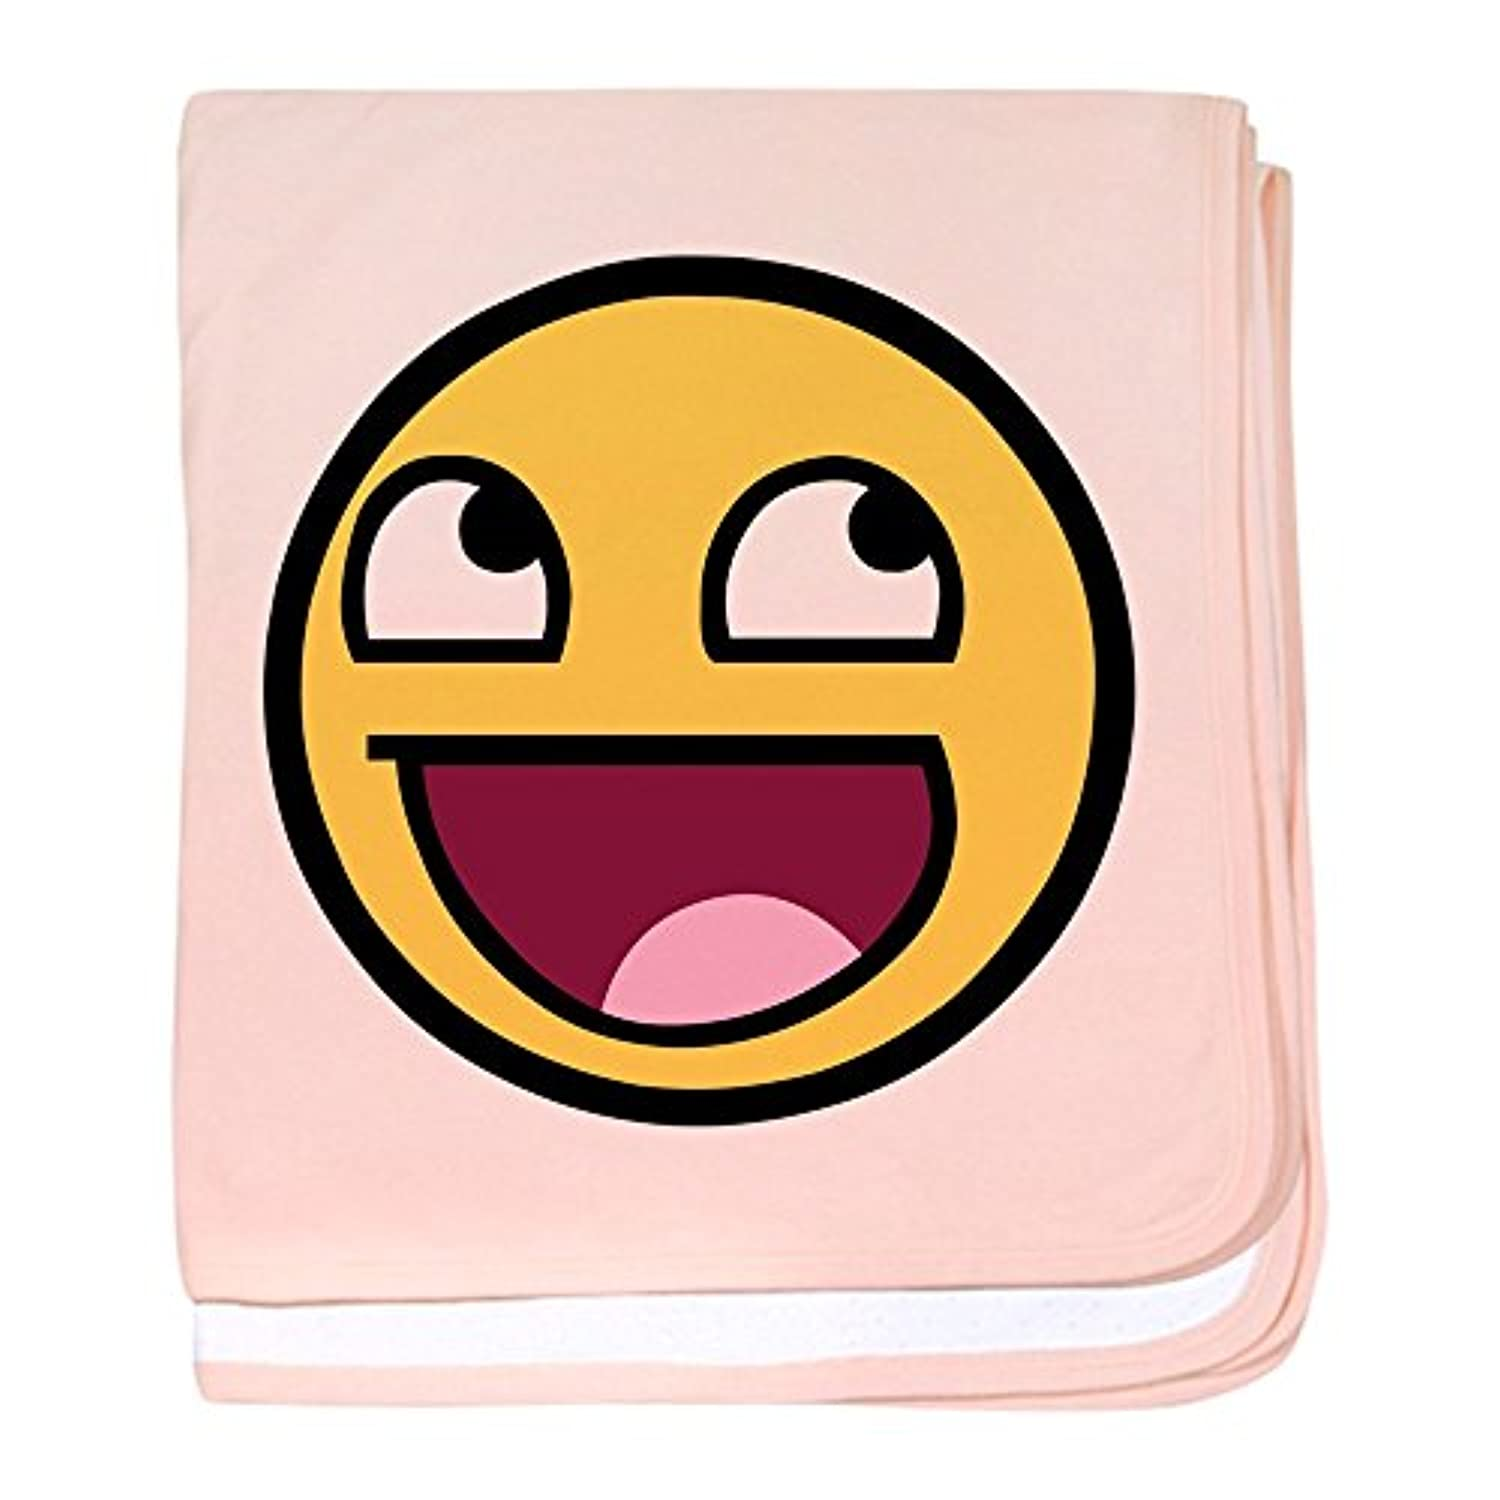 CafePress – Awesome Face – スーパーソフトベビー毛布、新生児おくるみ ピンク 06178612606832E